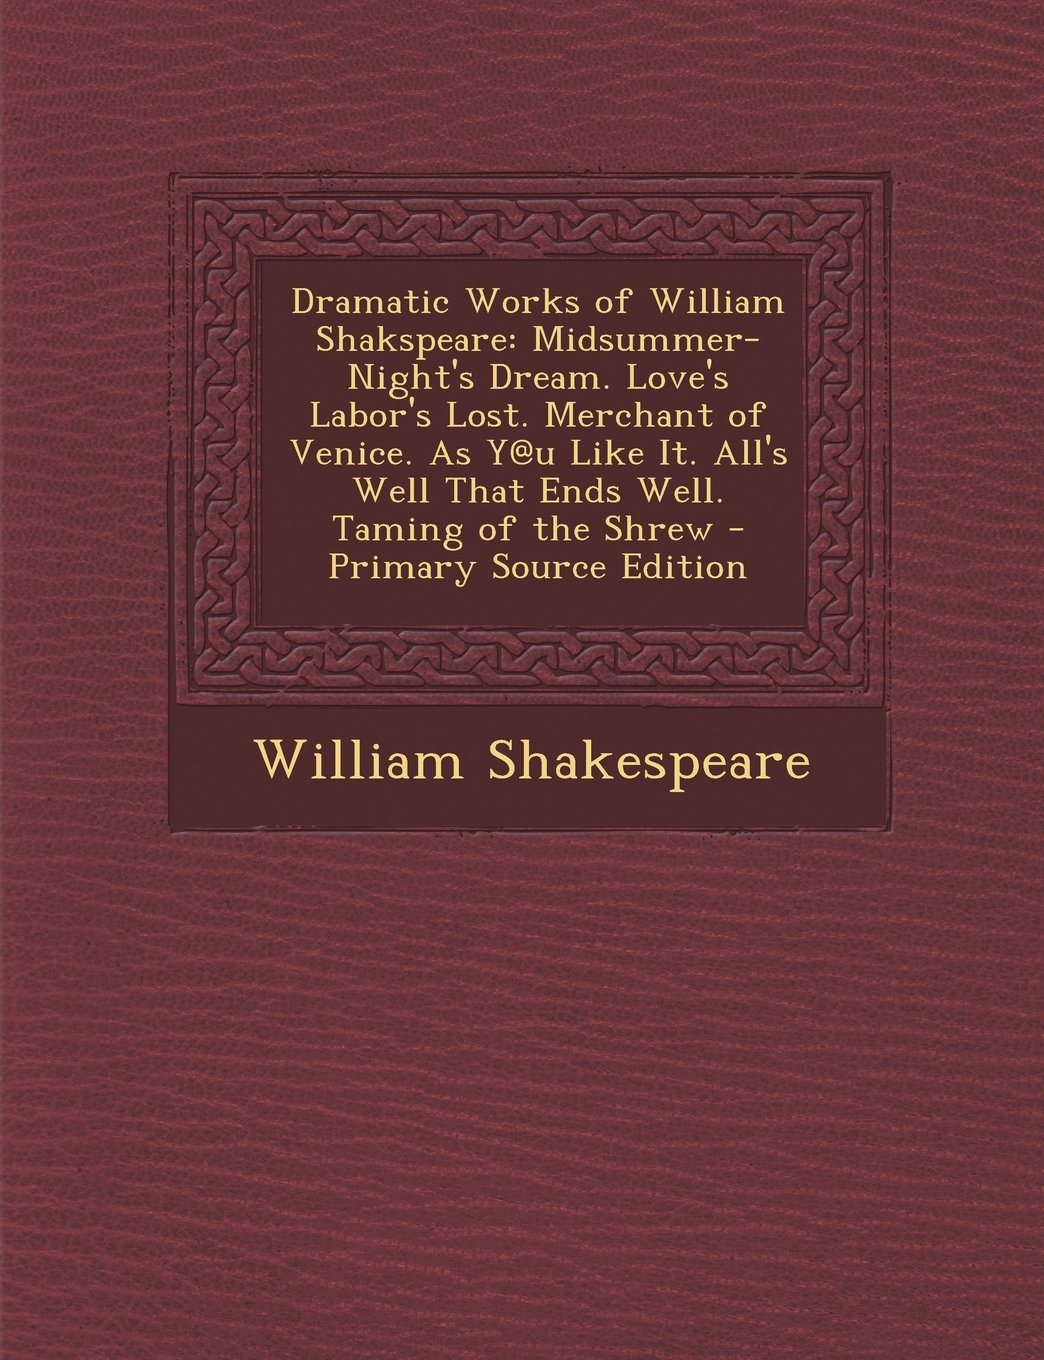 Download Dramatic Works of William Shakspeare: Midsummer-Night's Dream. Love's Labor's Lost. Merchant of Venice. As Y@u Like It. All's Well That Ends Well. Taming of the Shrew - Primary Source Edition PDF